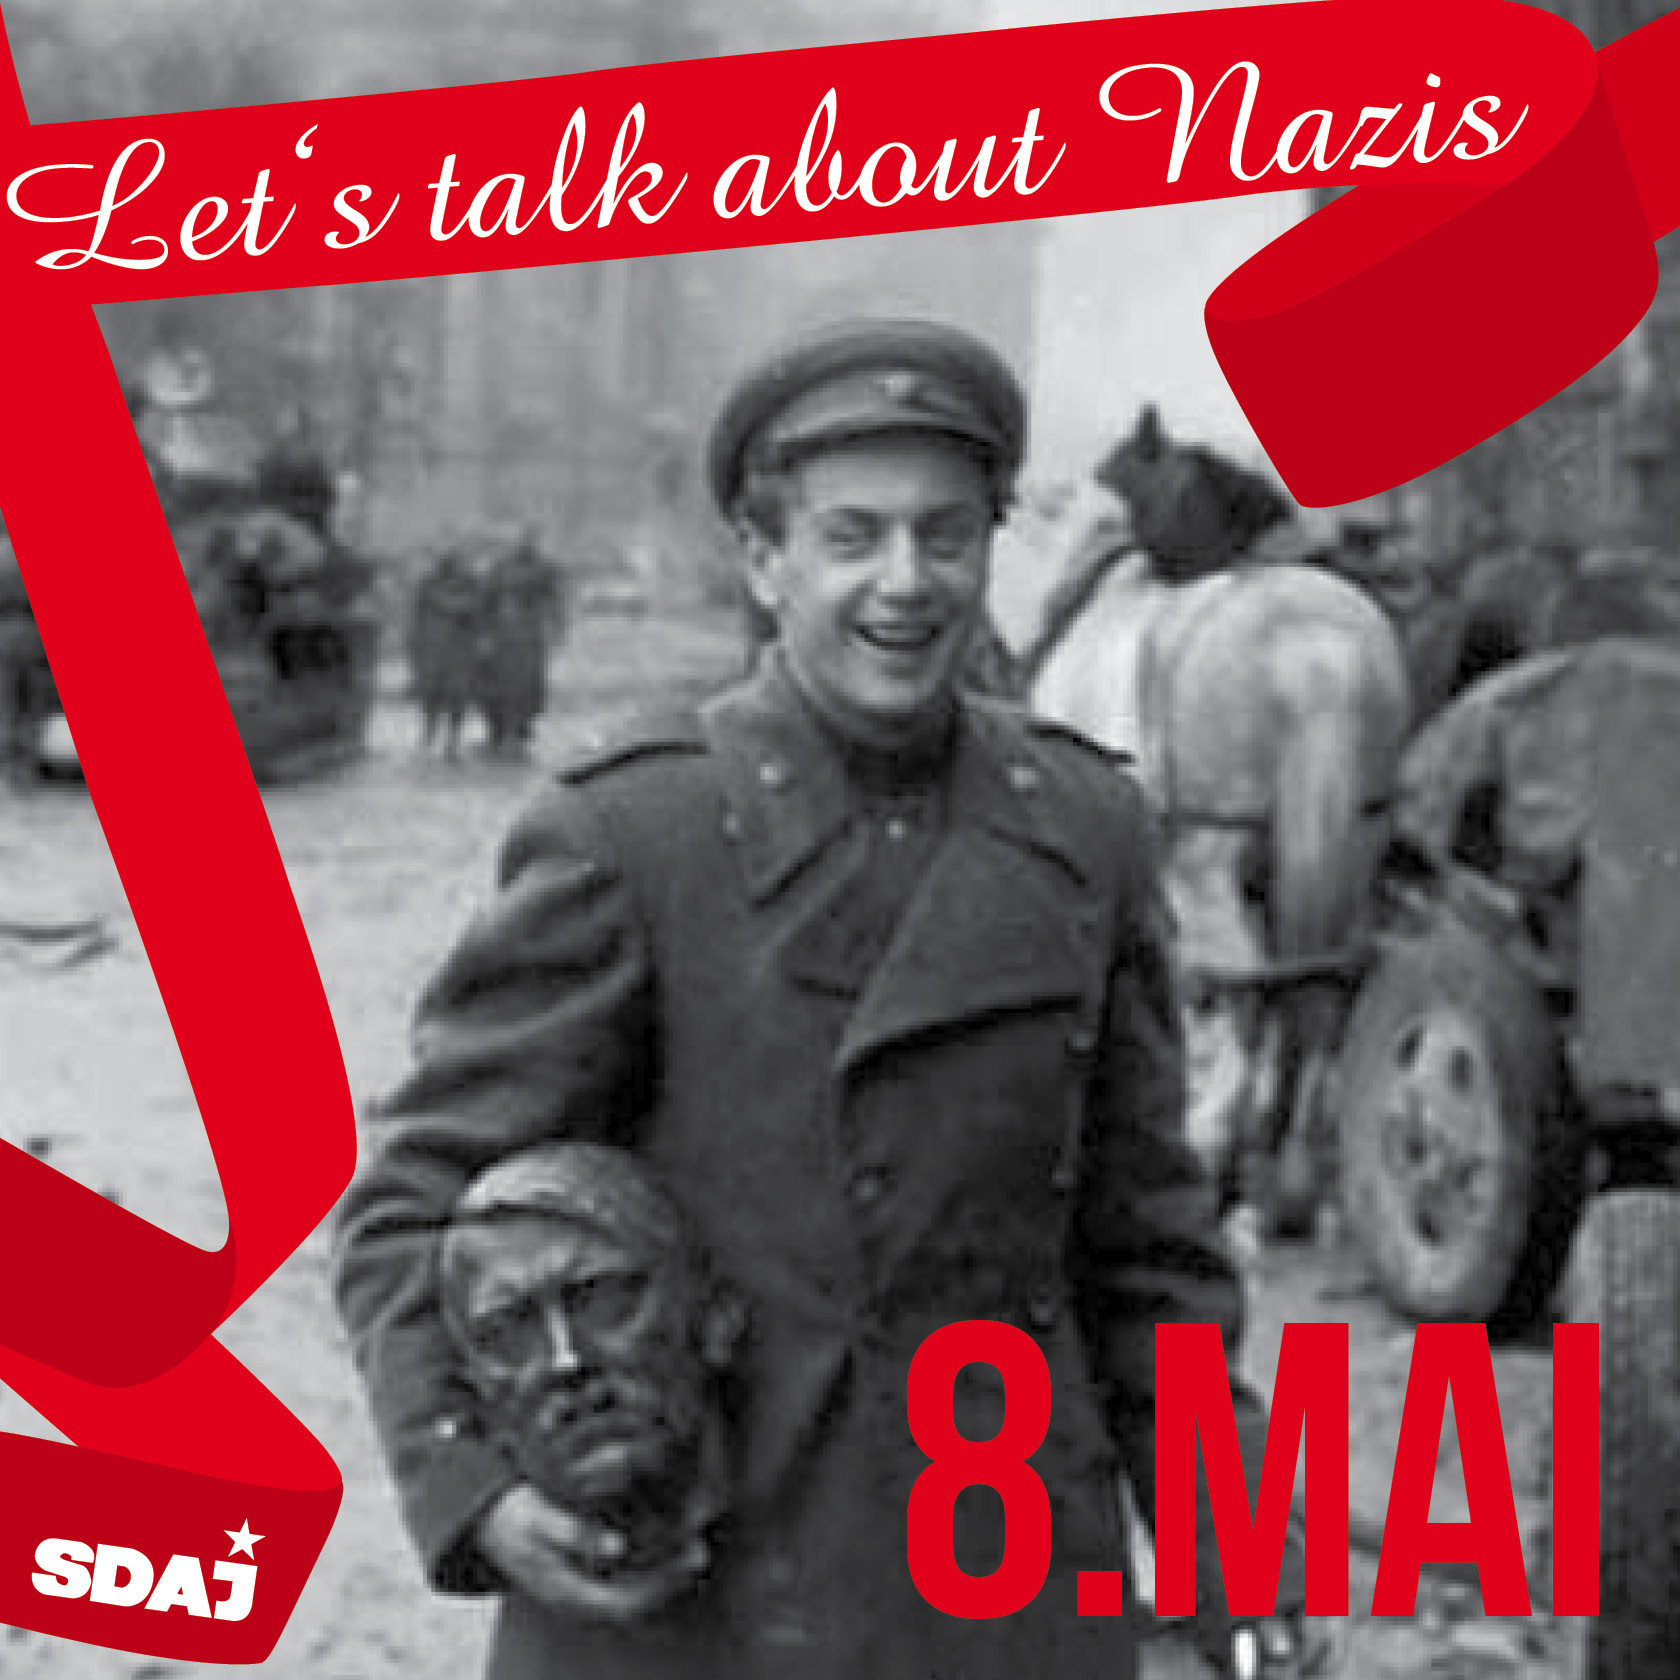 8.Mai: Let's talk about Nazis